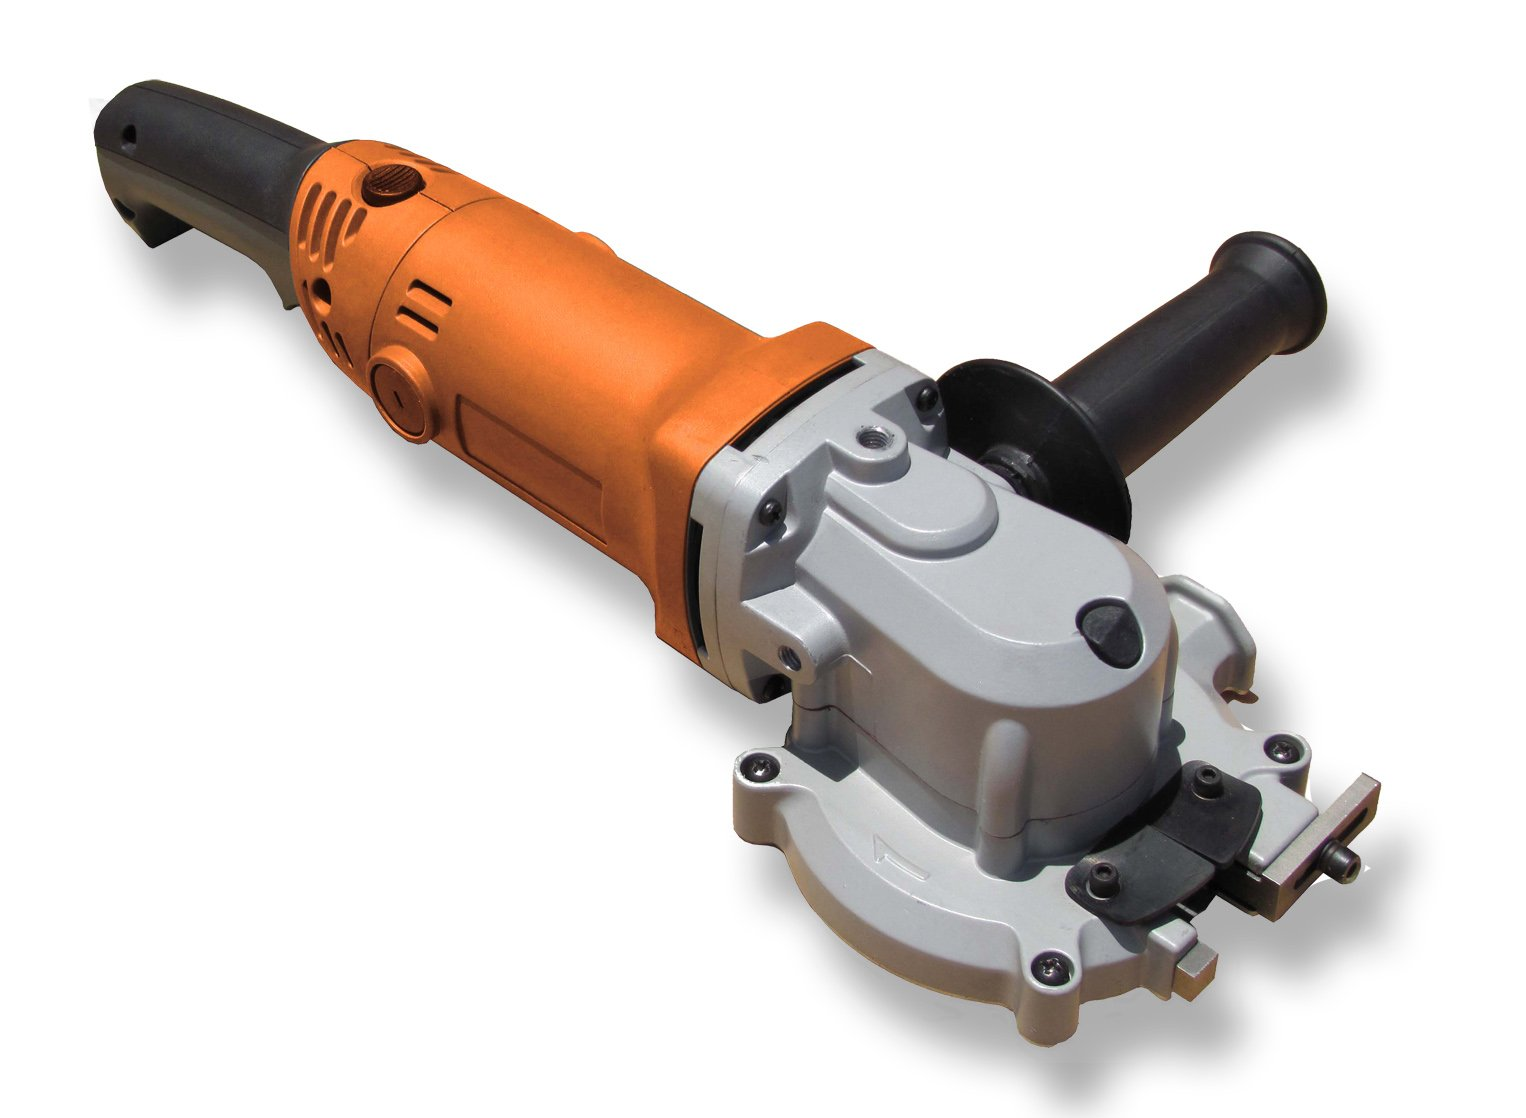 BN Products BNCE-20  Cutting Edge Saw, Orange by BN Products